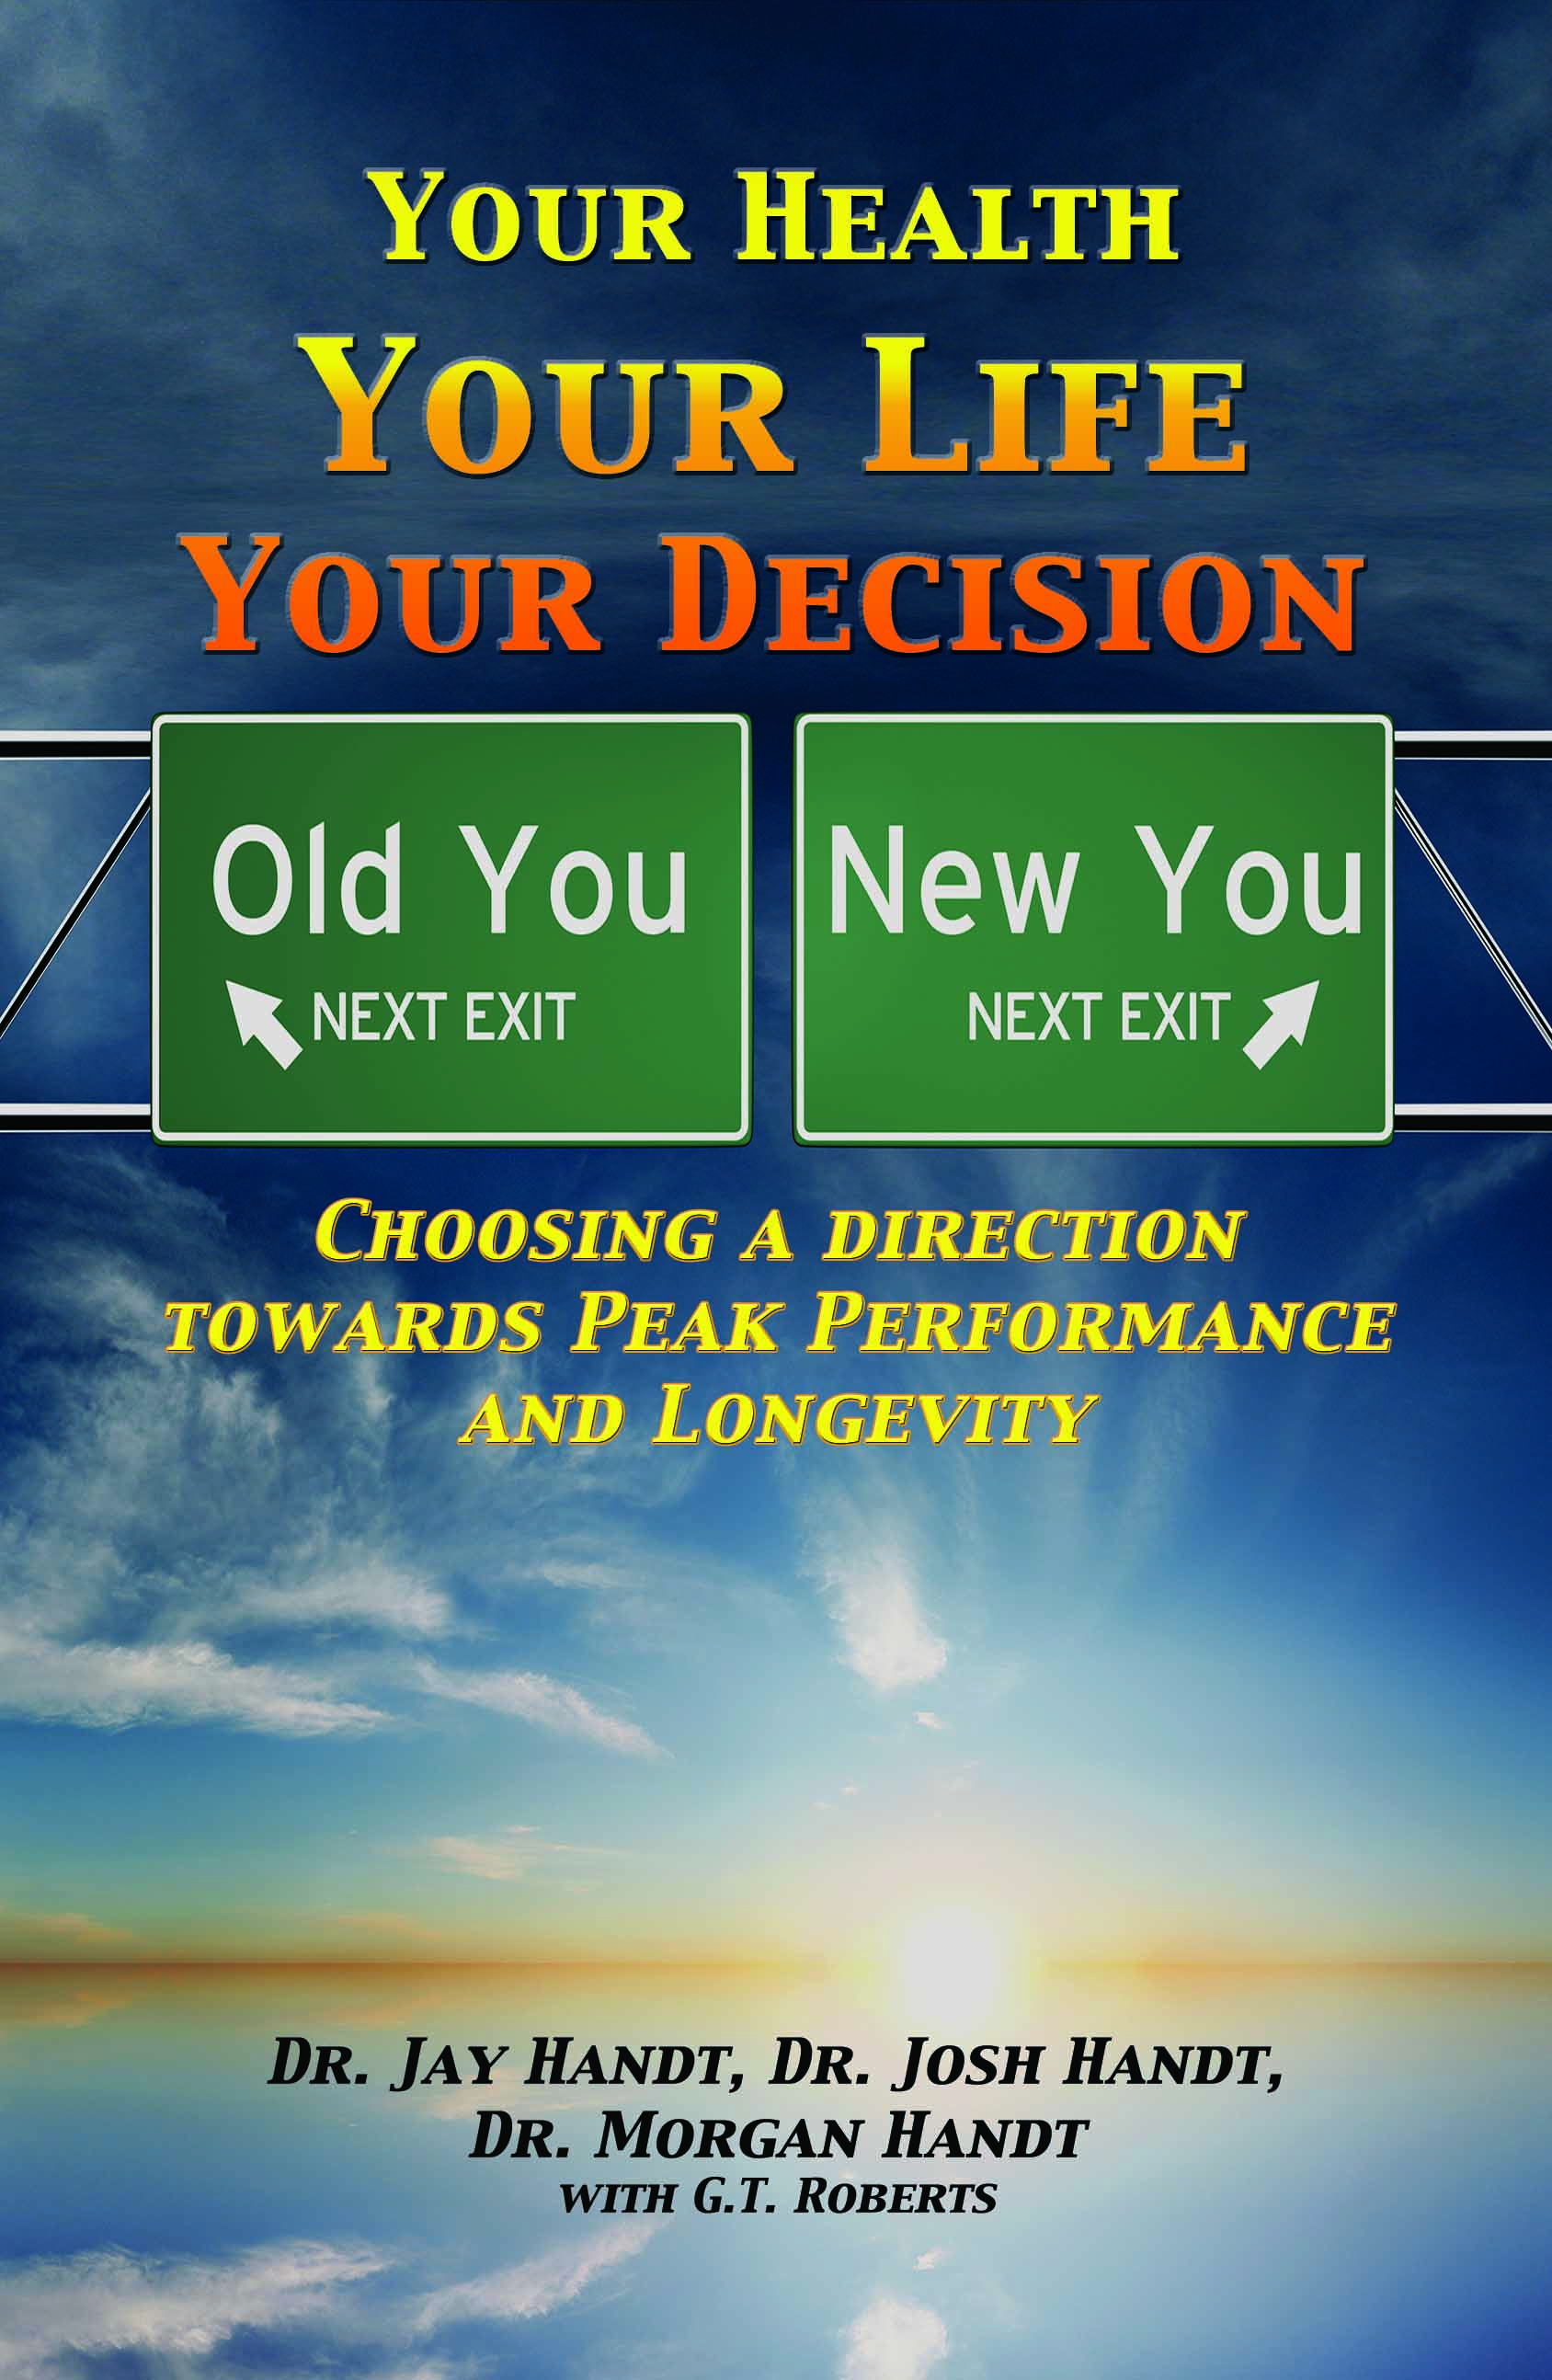 Your Health, Your Life, Your Decision